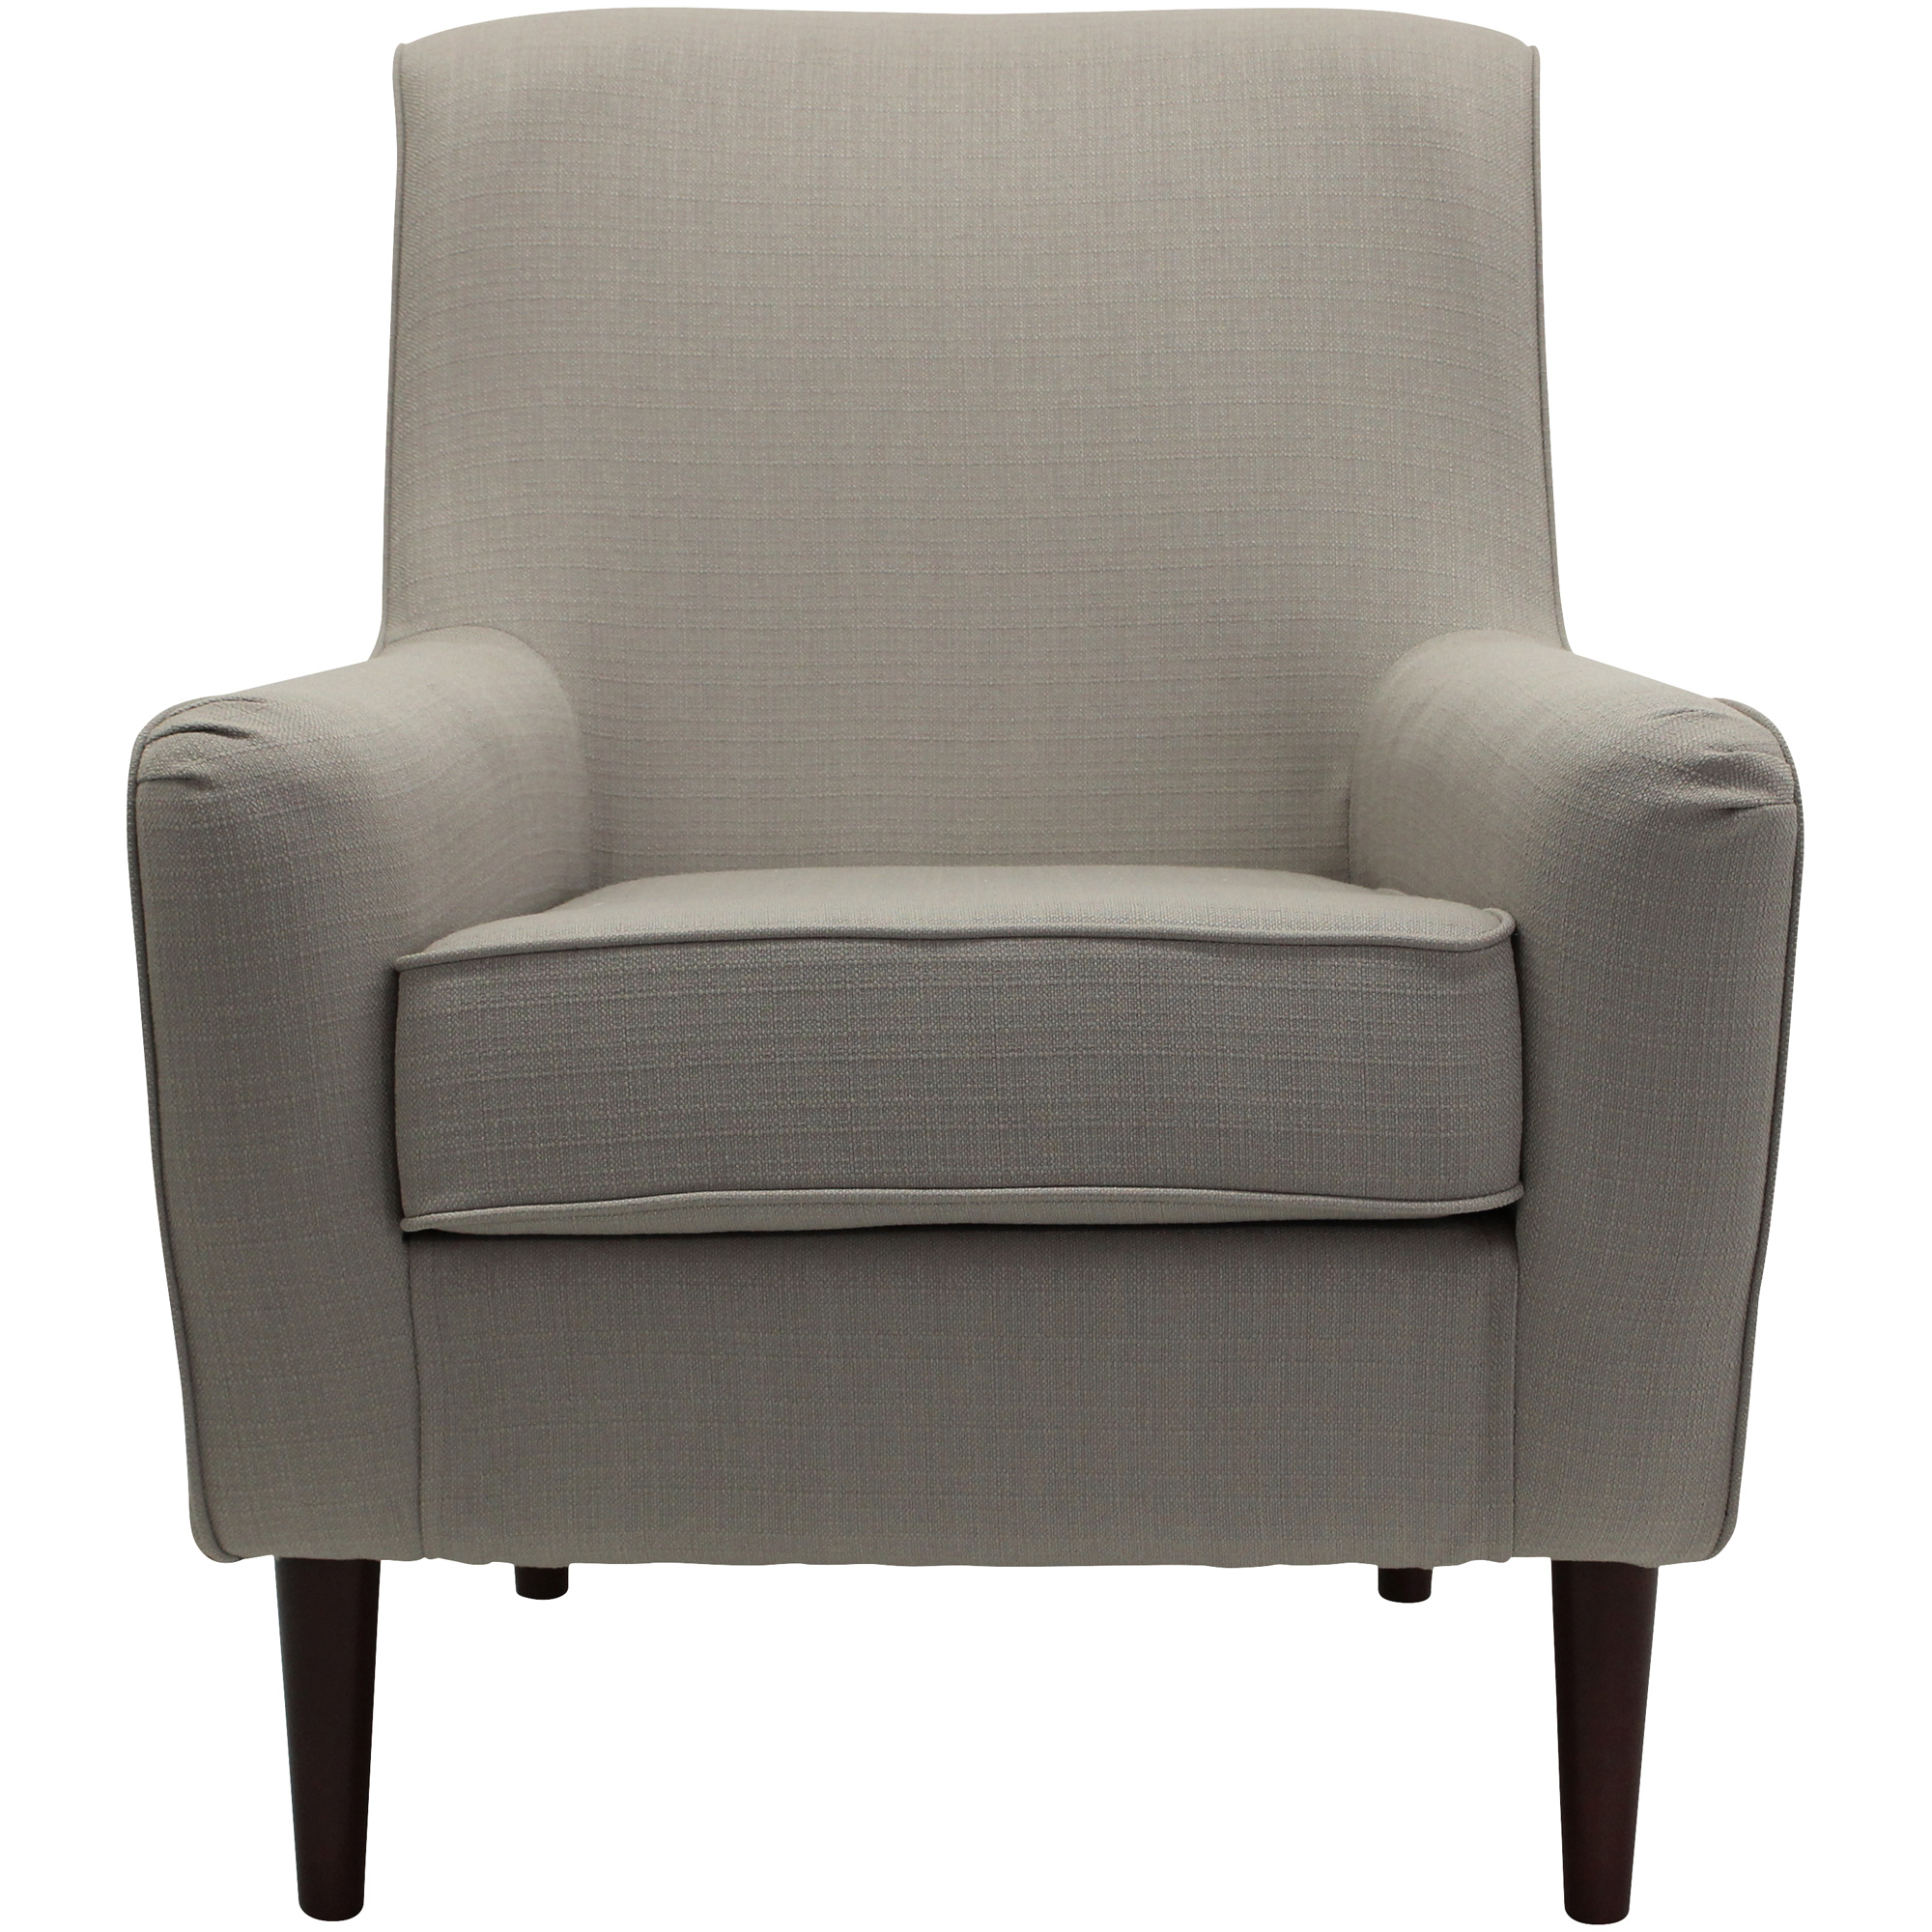 Overman | Laura Taupe Accent Chair